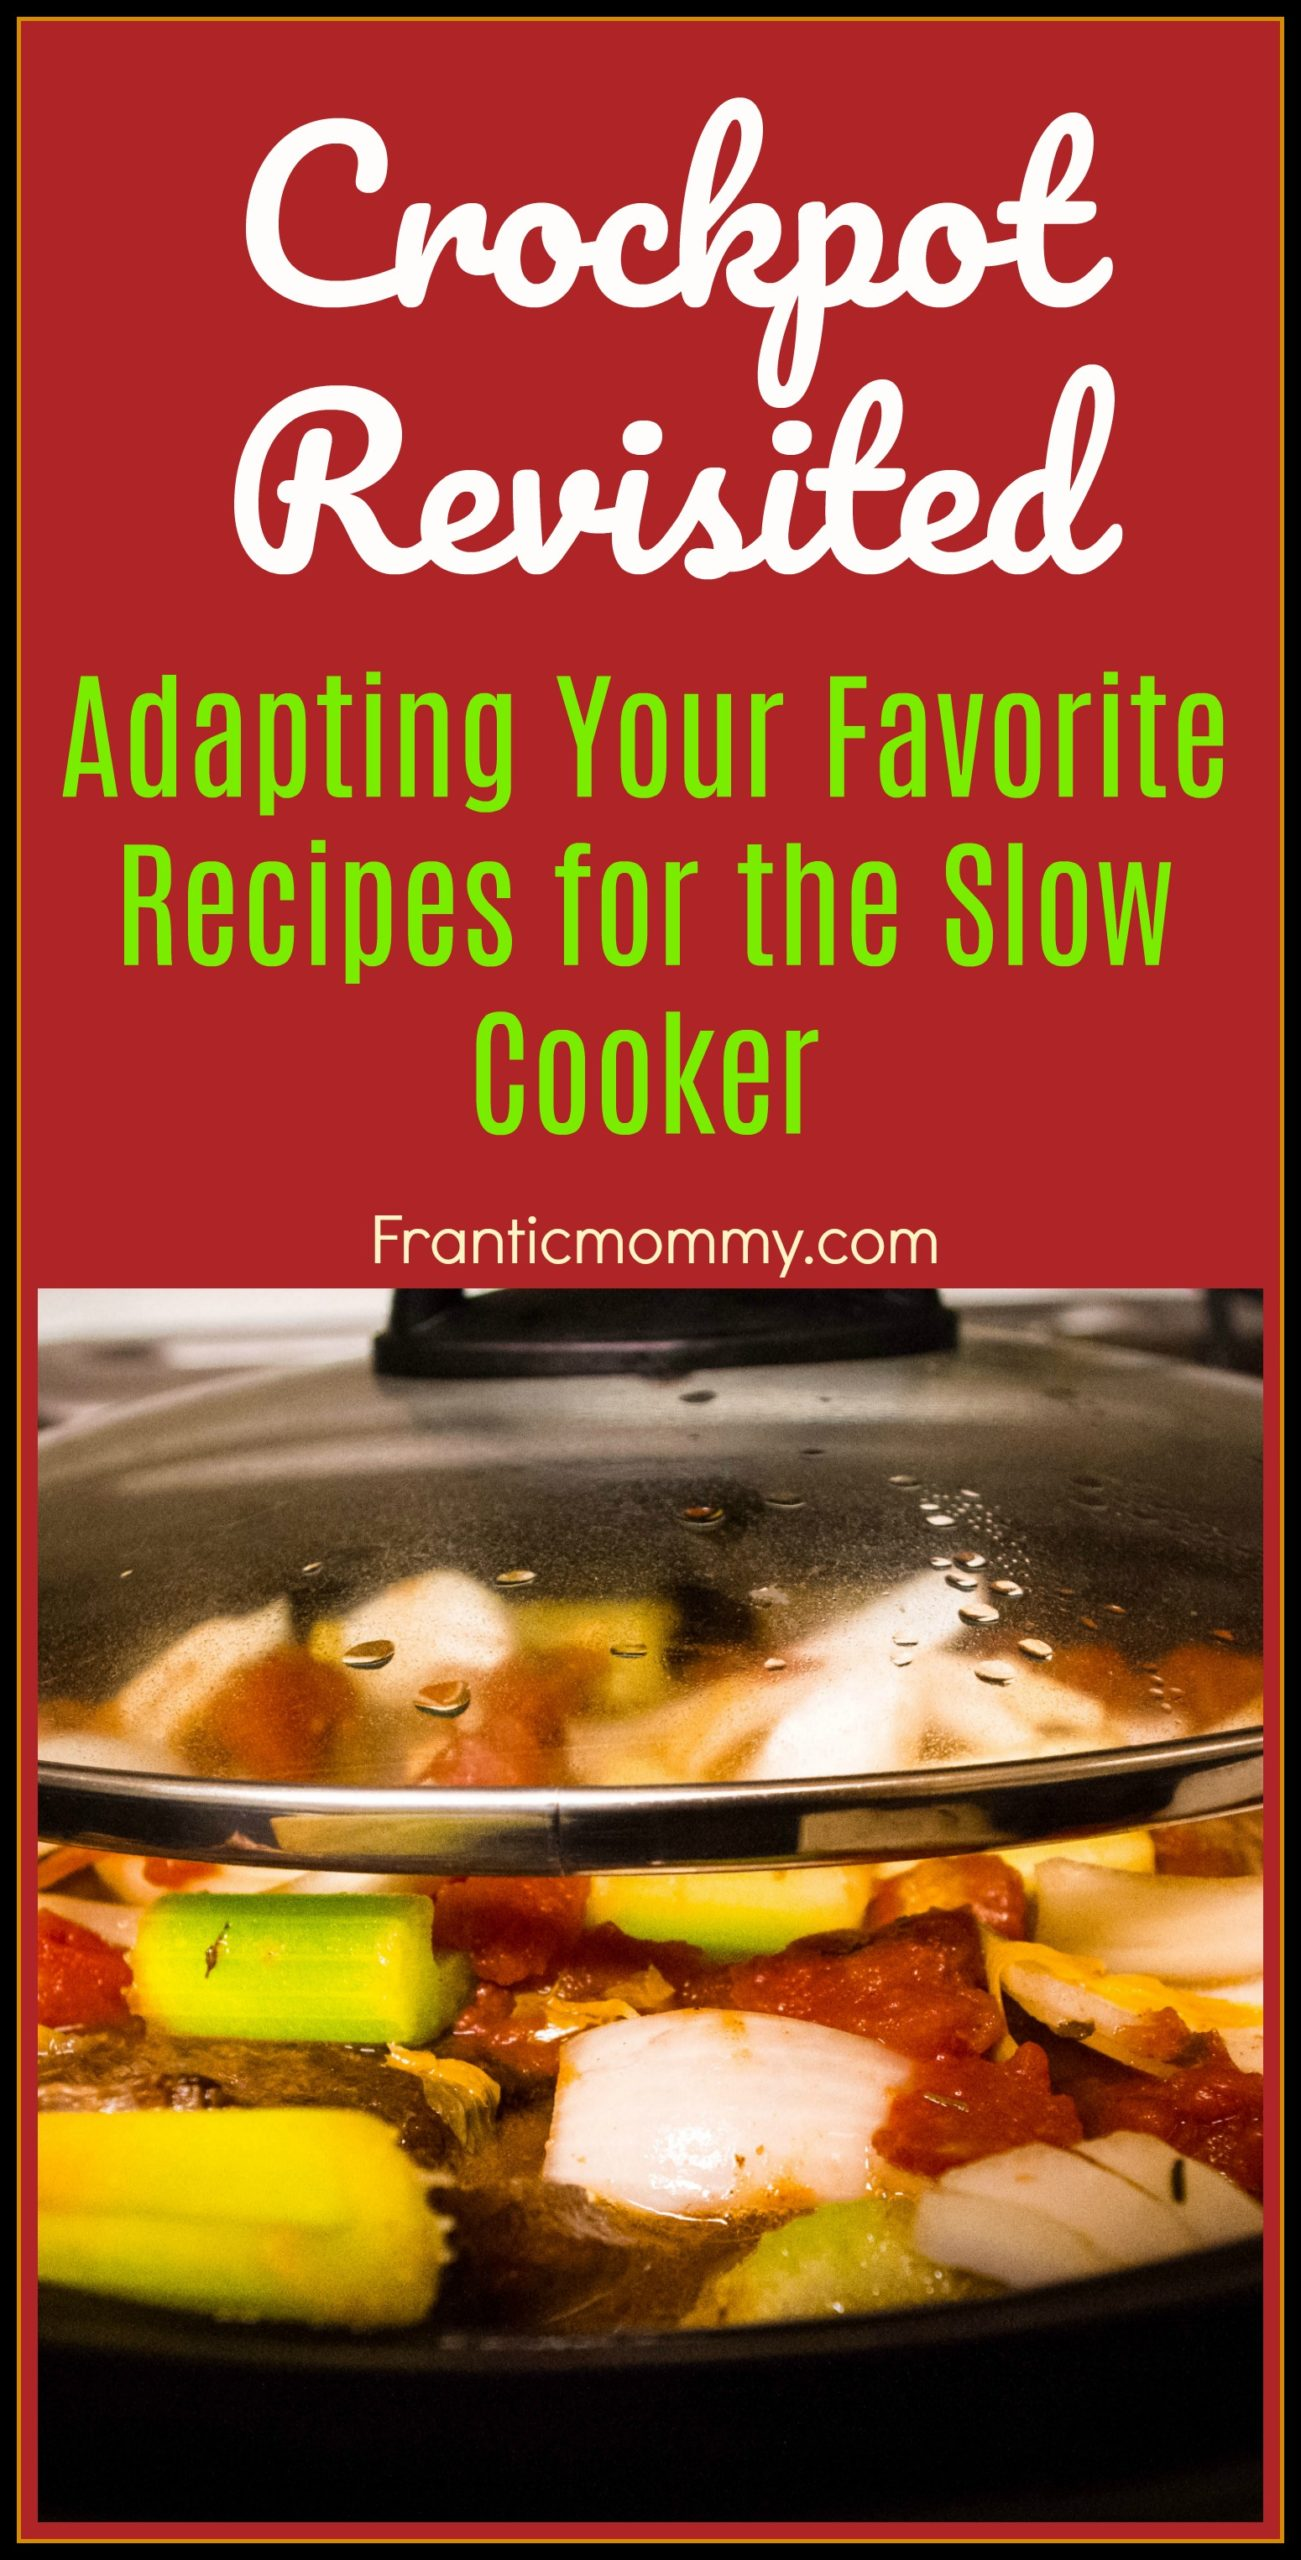 Crockpot Revisited: Adapting Your Favorite Recipes for the Slow Cooker